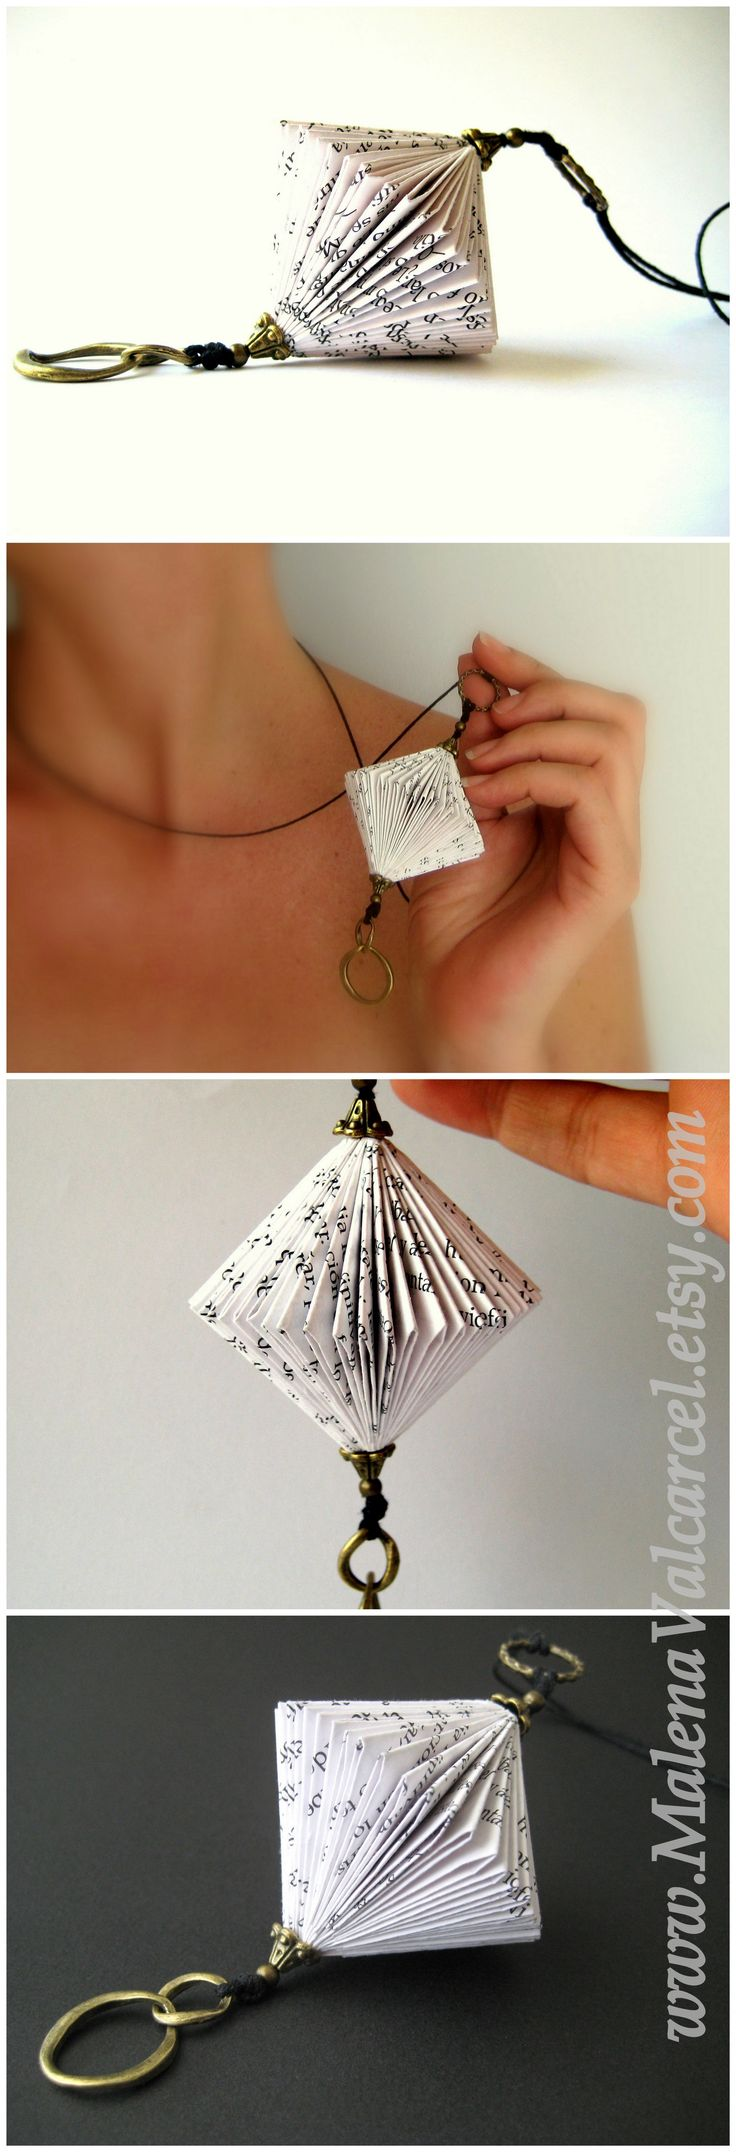 Not a tutorial but an interesting idea for paper jewelry. Paper Jewelry Bisutería de Papel